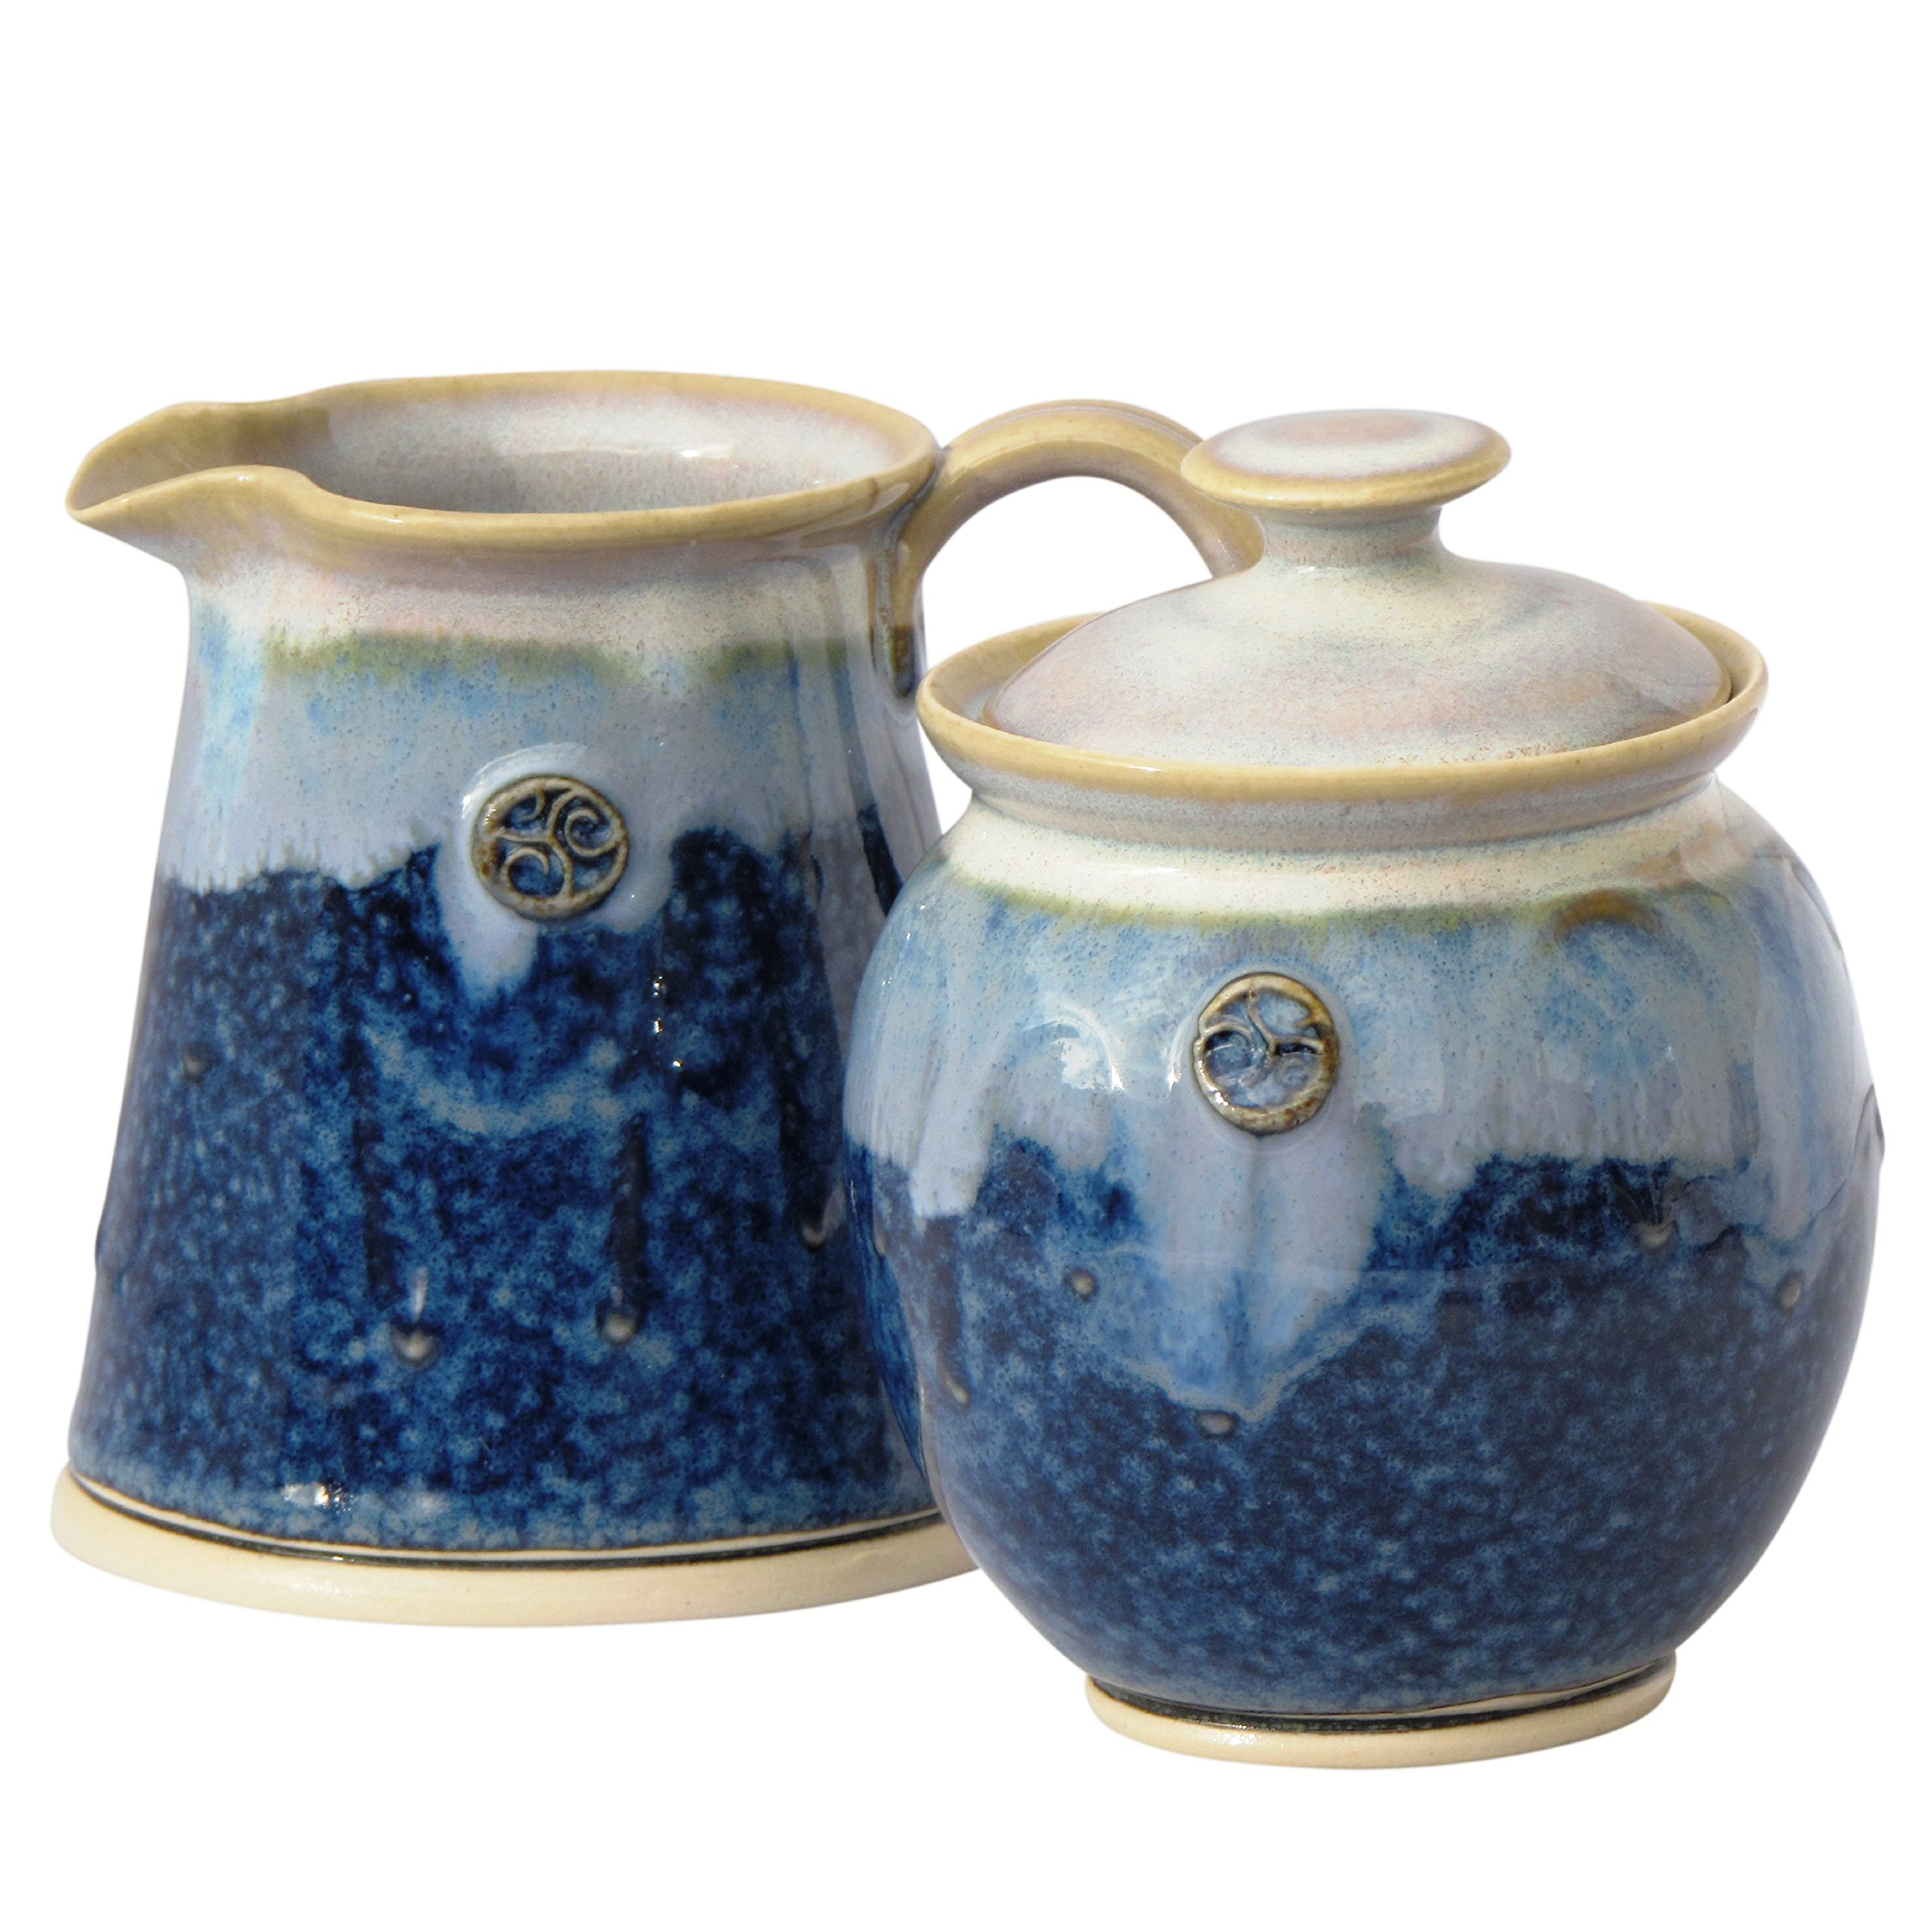 Sugar Bowl and Creamer Set. Handmade Lead Free Glazed Irish Pottery